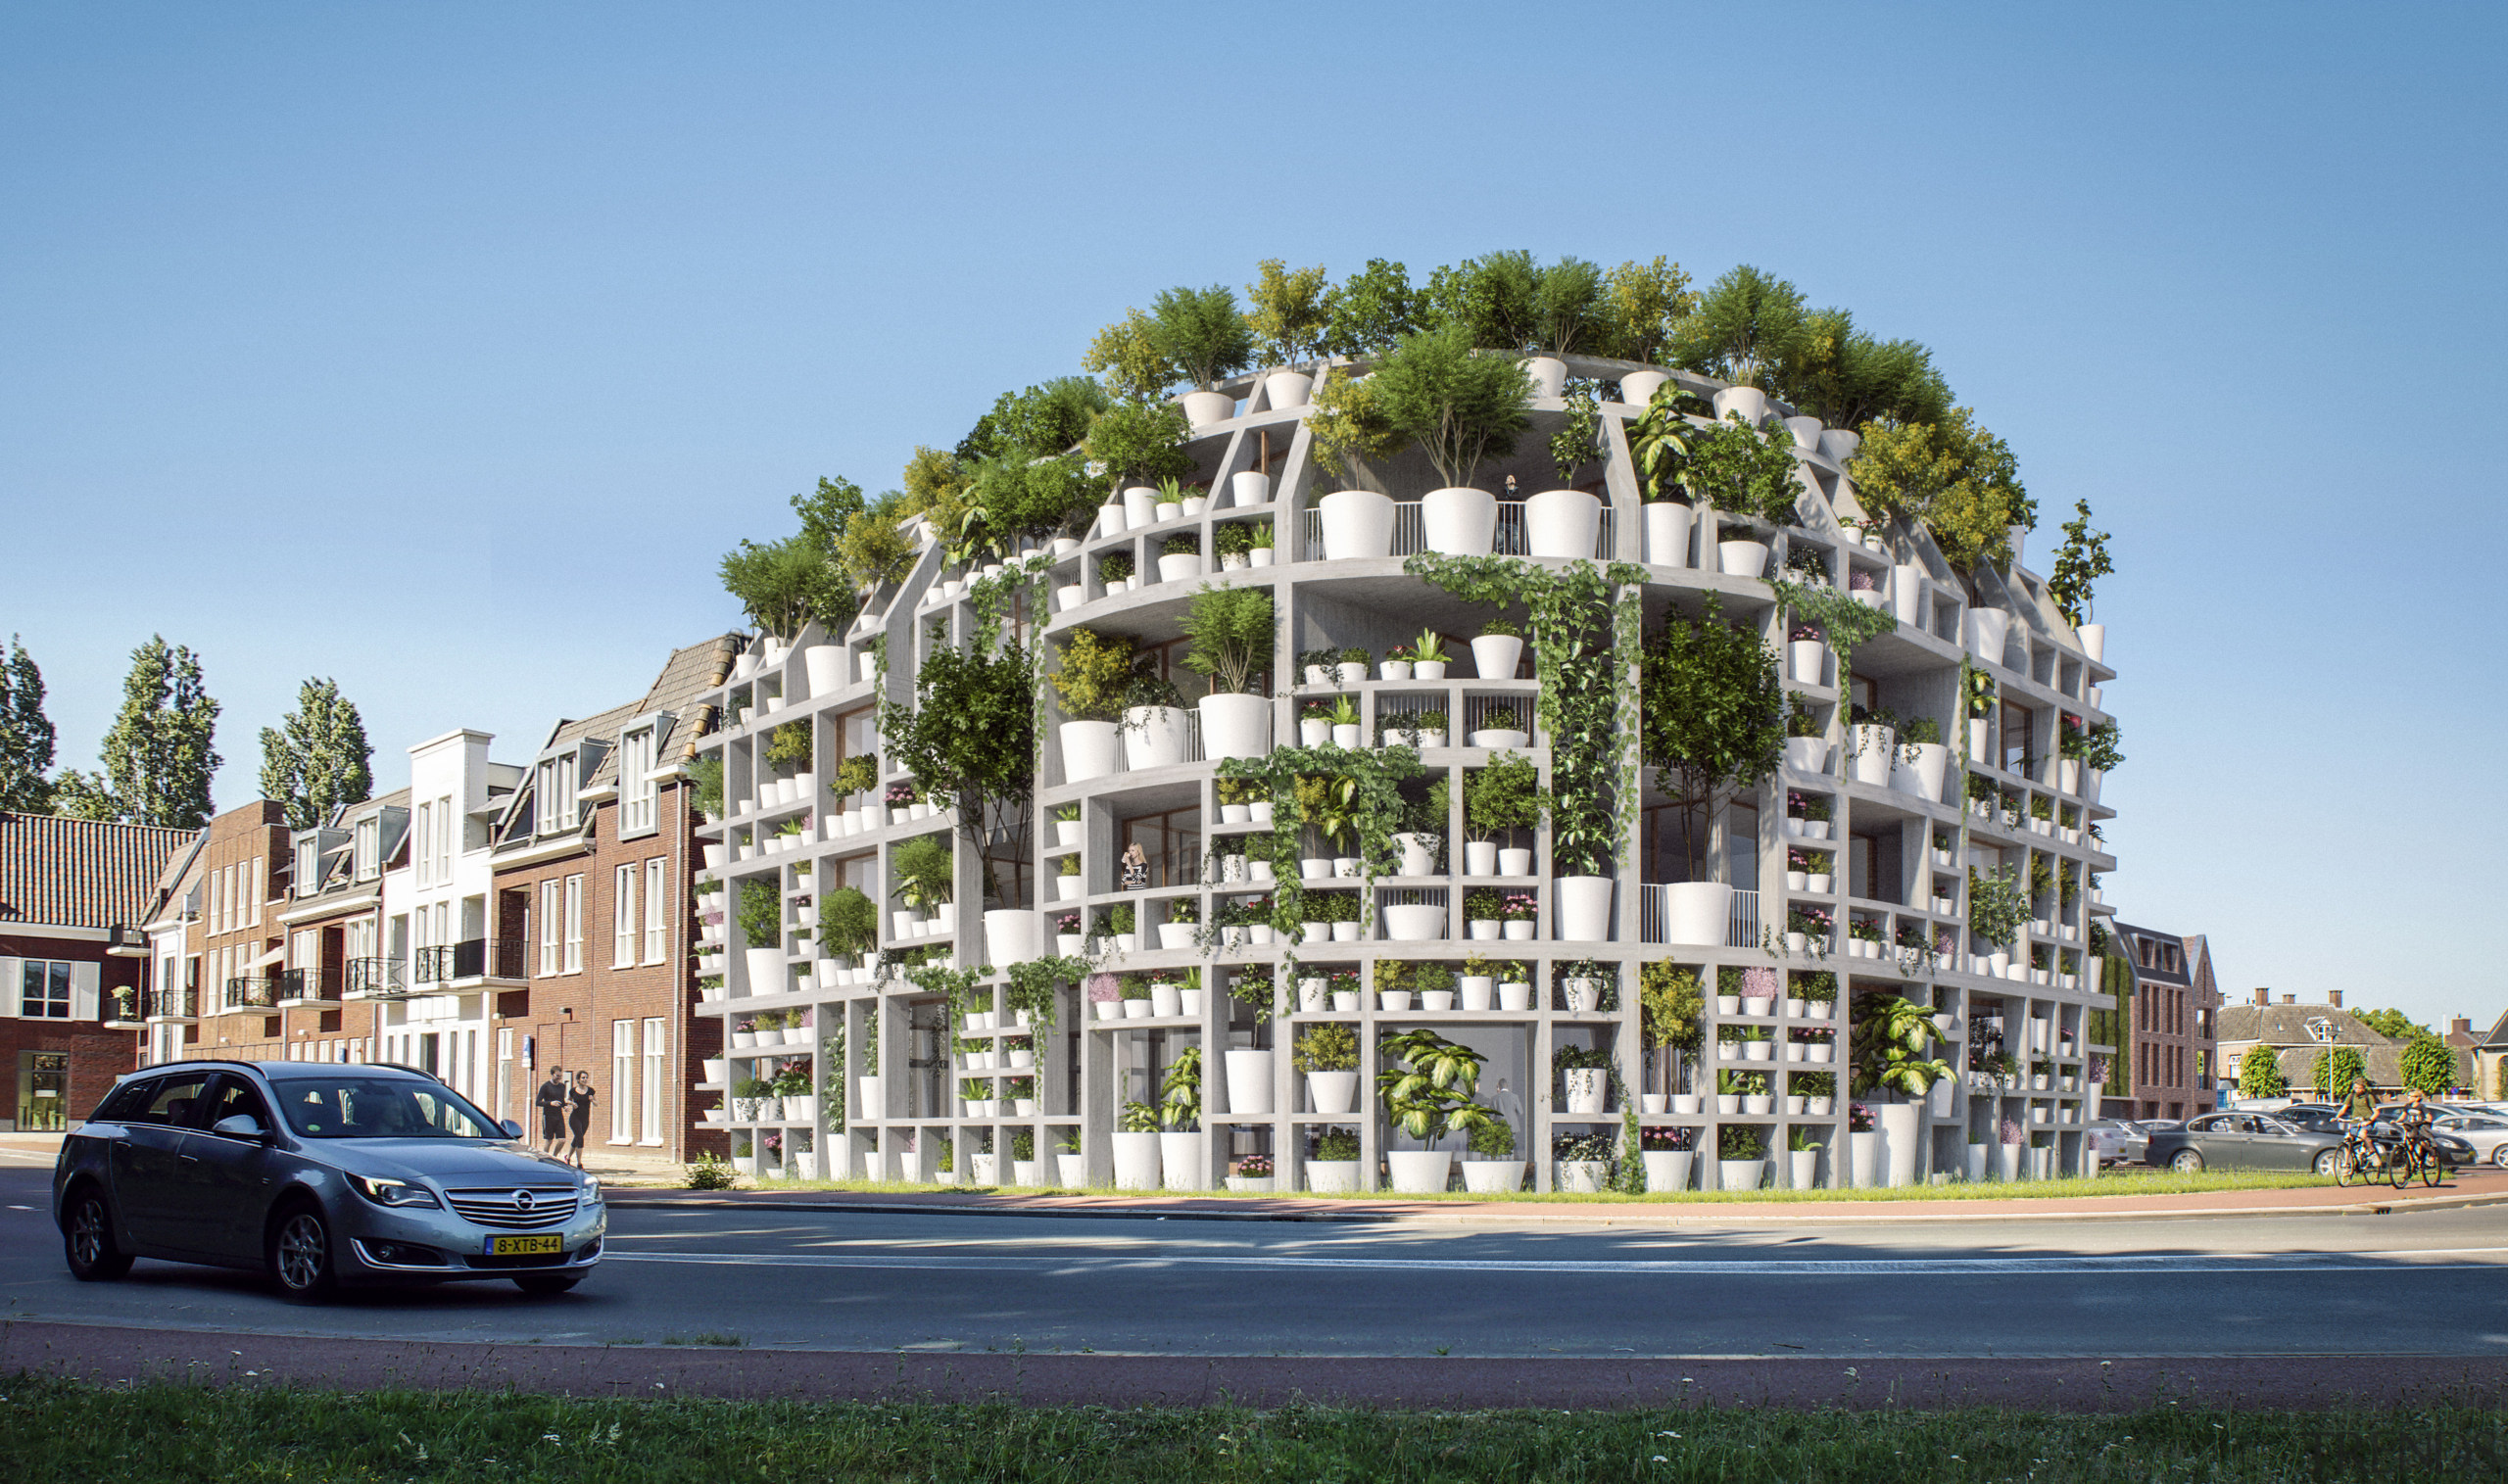 With Green Villa, MVRDV has rounded a corner apartment, architecture, building, car, city car, compact car, condominium, facade, family car, house, luxury vehicle, metropolitan area, mid-size car, mixed-use, neighbourhood, property, real estate, residential area, subcompact car, suburb, tree, urban design, vehicle, teal